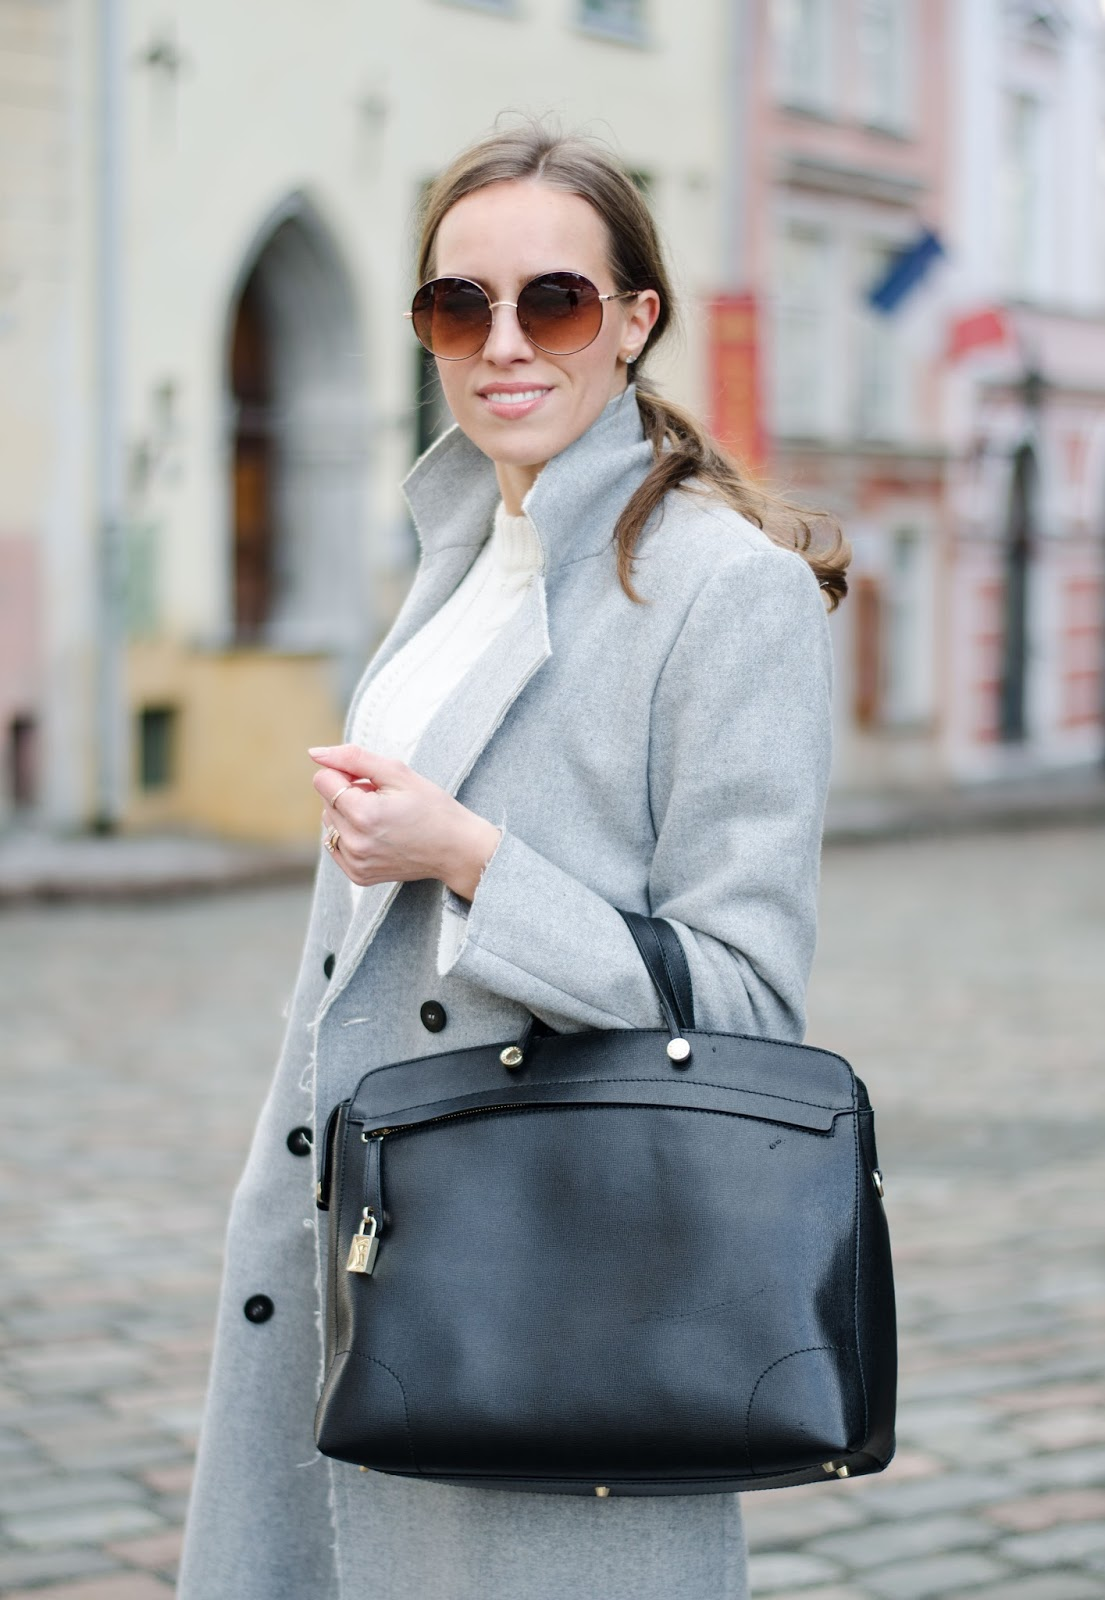 kristjaana mere vila gray wool coat lindex round sunglasses furla black leather bag